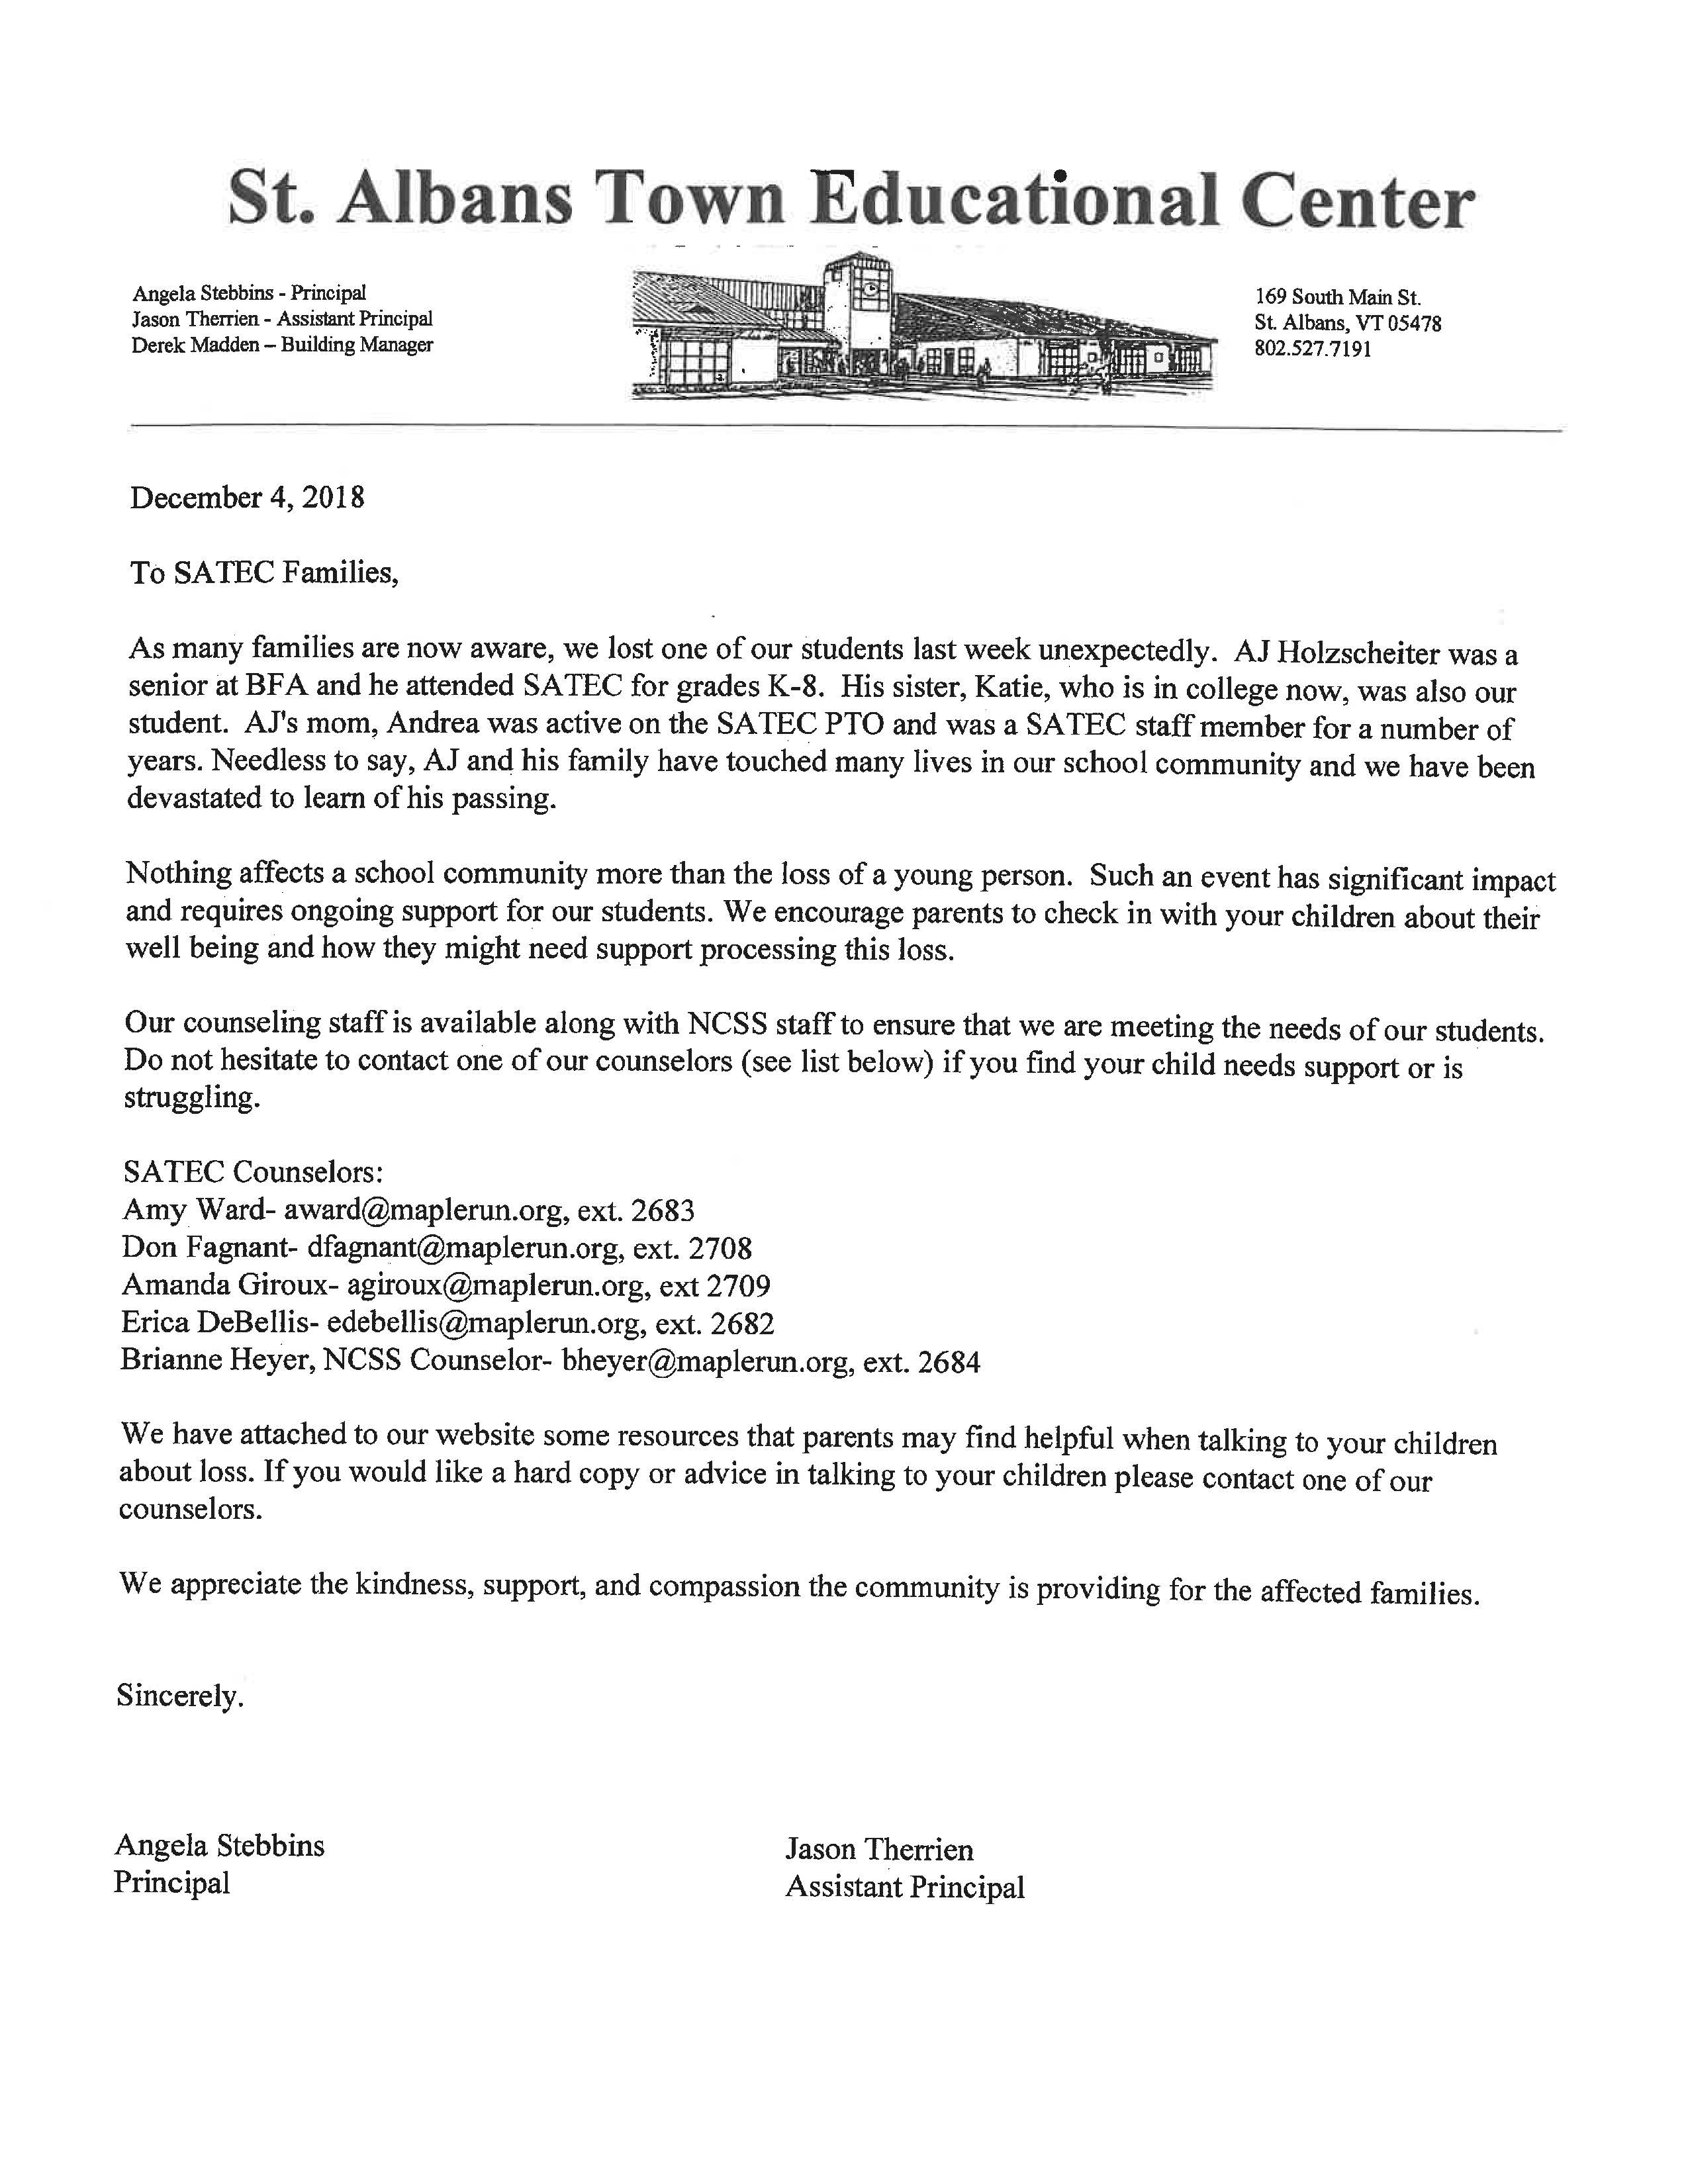 Letter dated December 4, 2018 from Principal Angela Stebbins and Assistant Principal Jason Therrien to SATEC Families